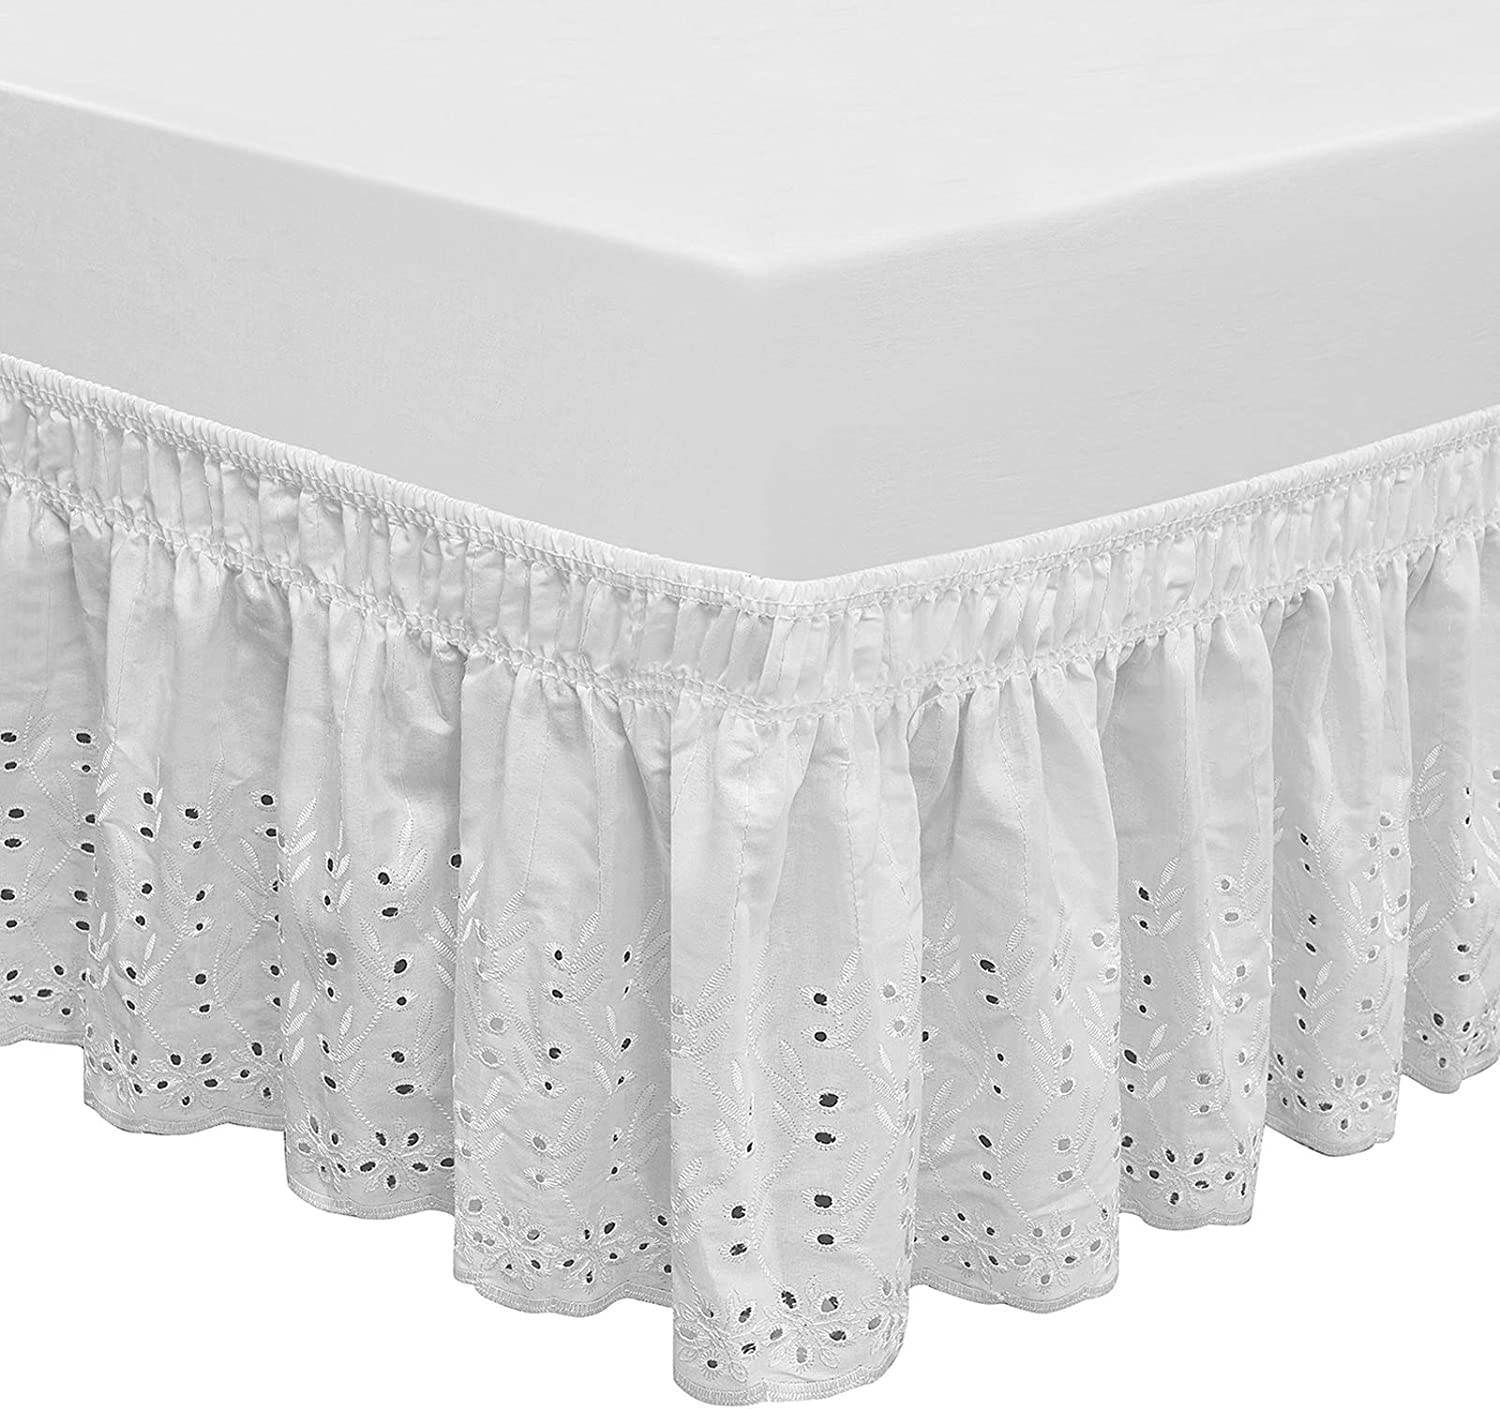 Lace Wrap Bed Skirt with Elastic Ruffle Bedding Dressing 14 Inch Drop All Sizes